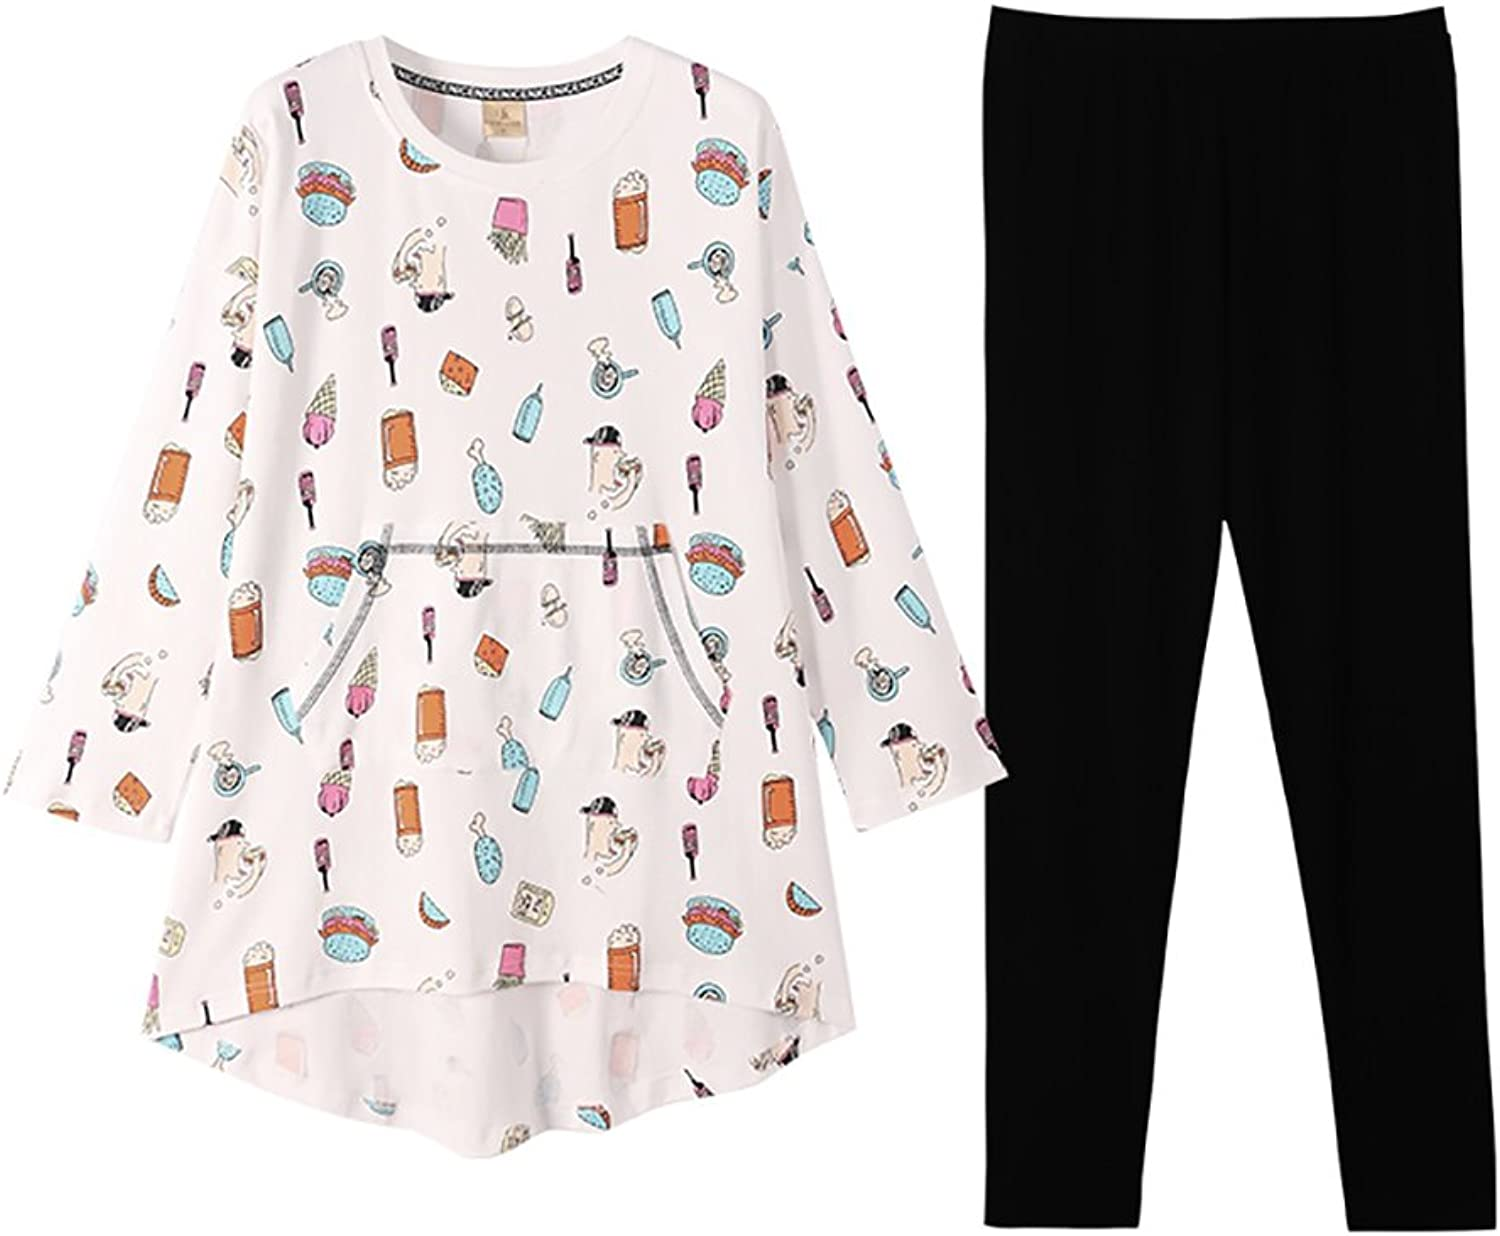 Pajamas cotton cute cartoon long sleeve trousers home clothing set ( color   White , Size   XL )